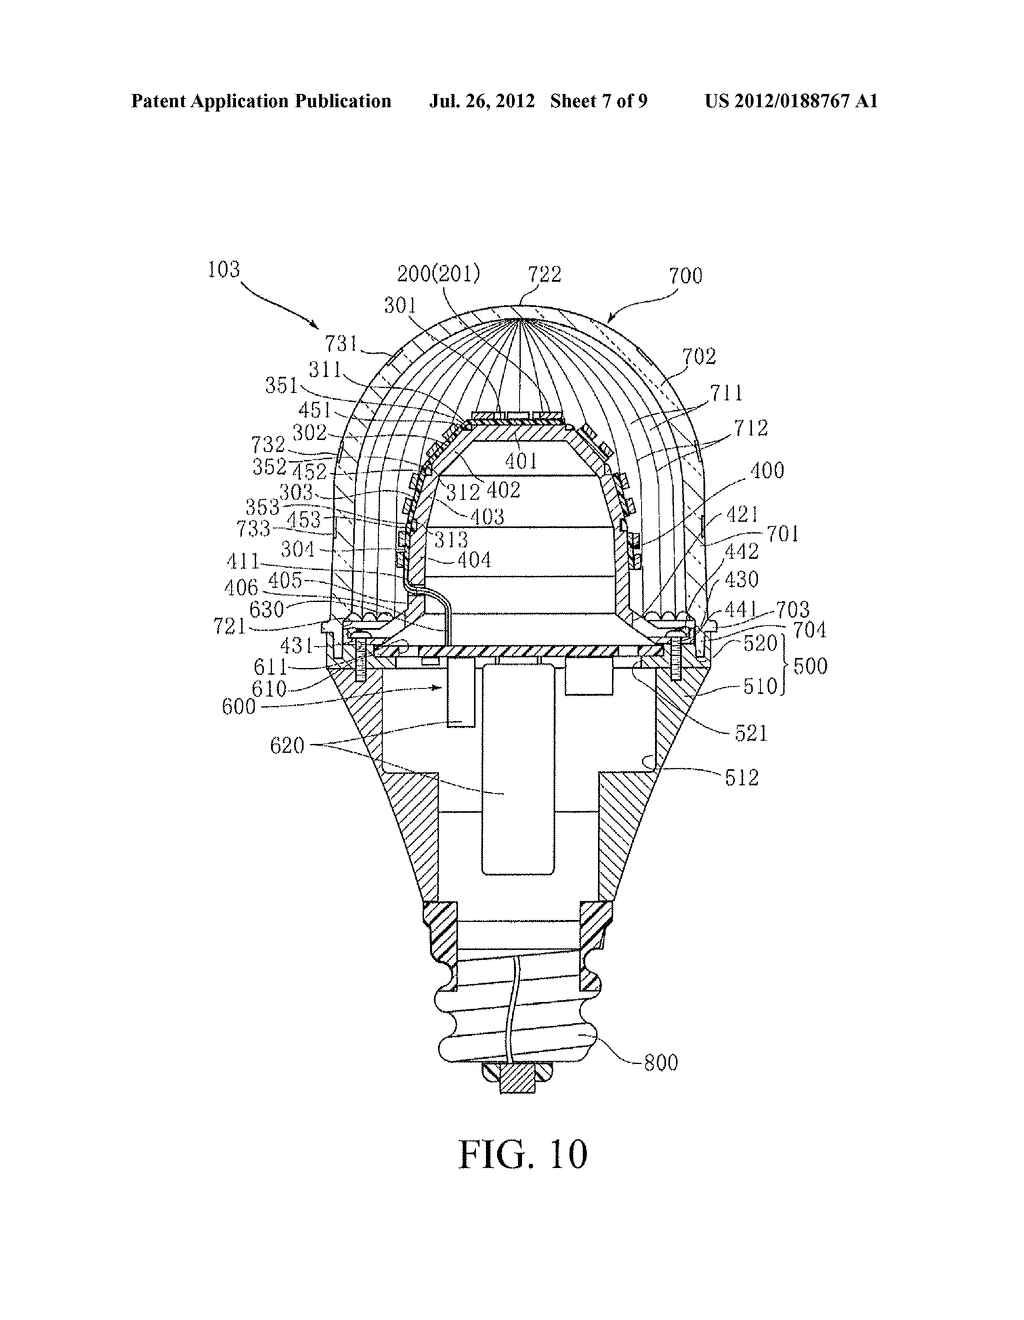 hight resolution of led light bulb diagram schematic and image 08 light bulb parts labeled light bulb schematic